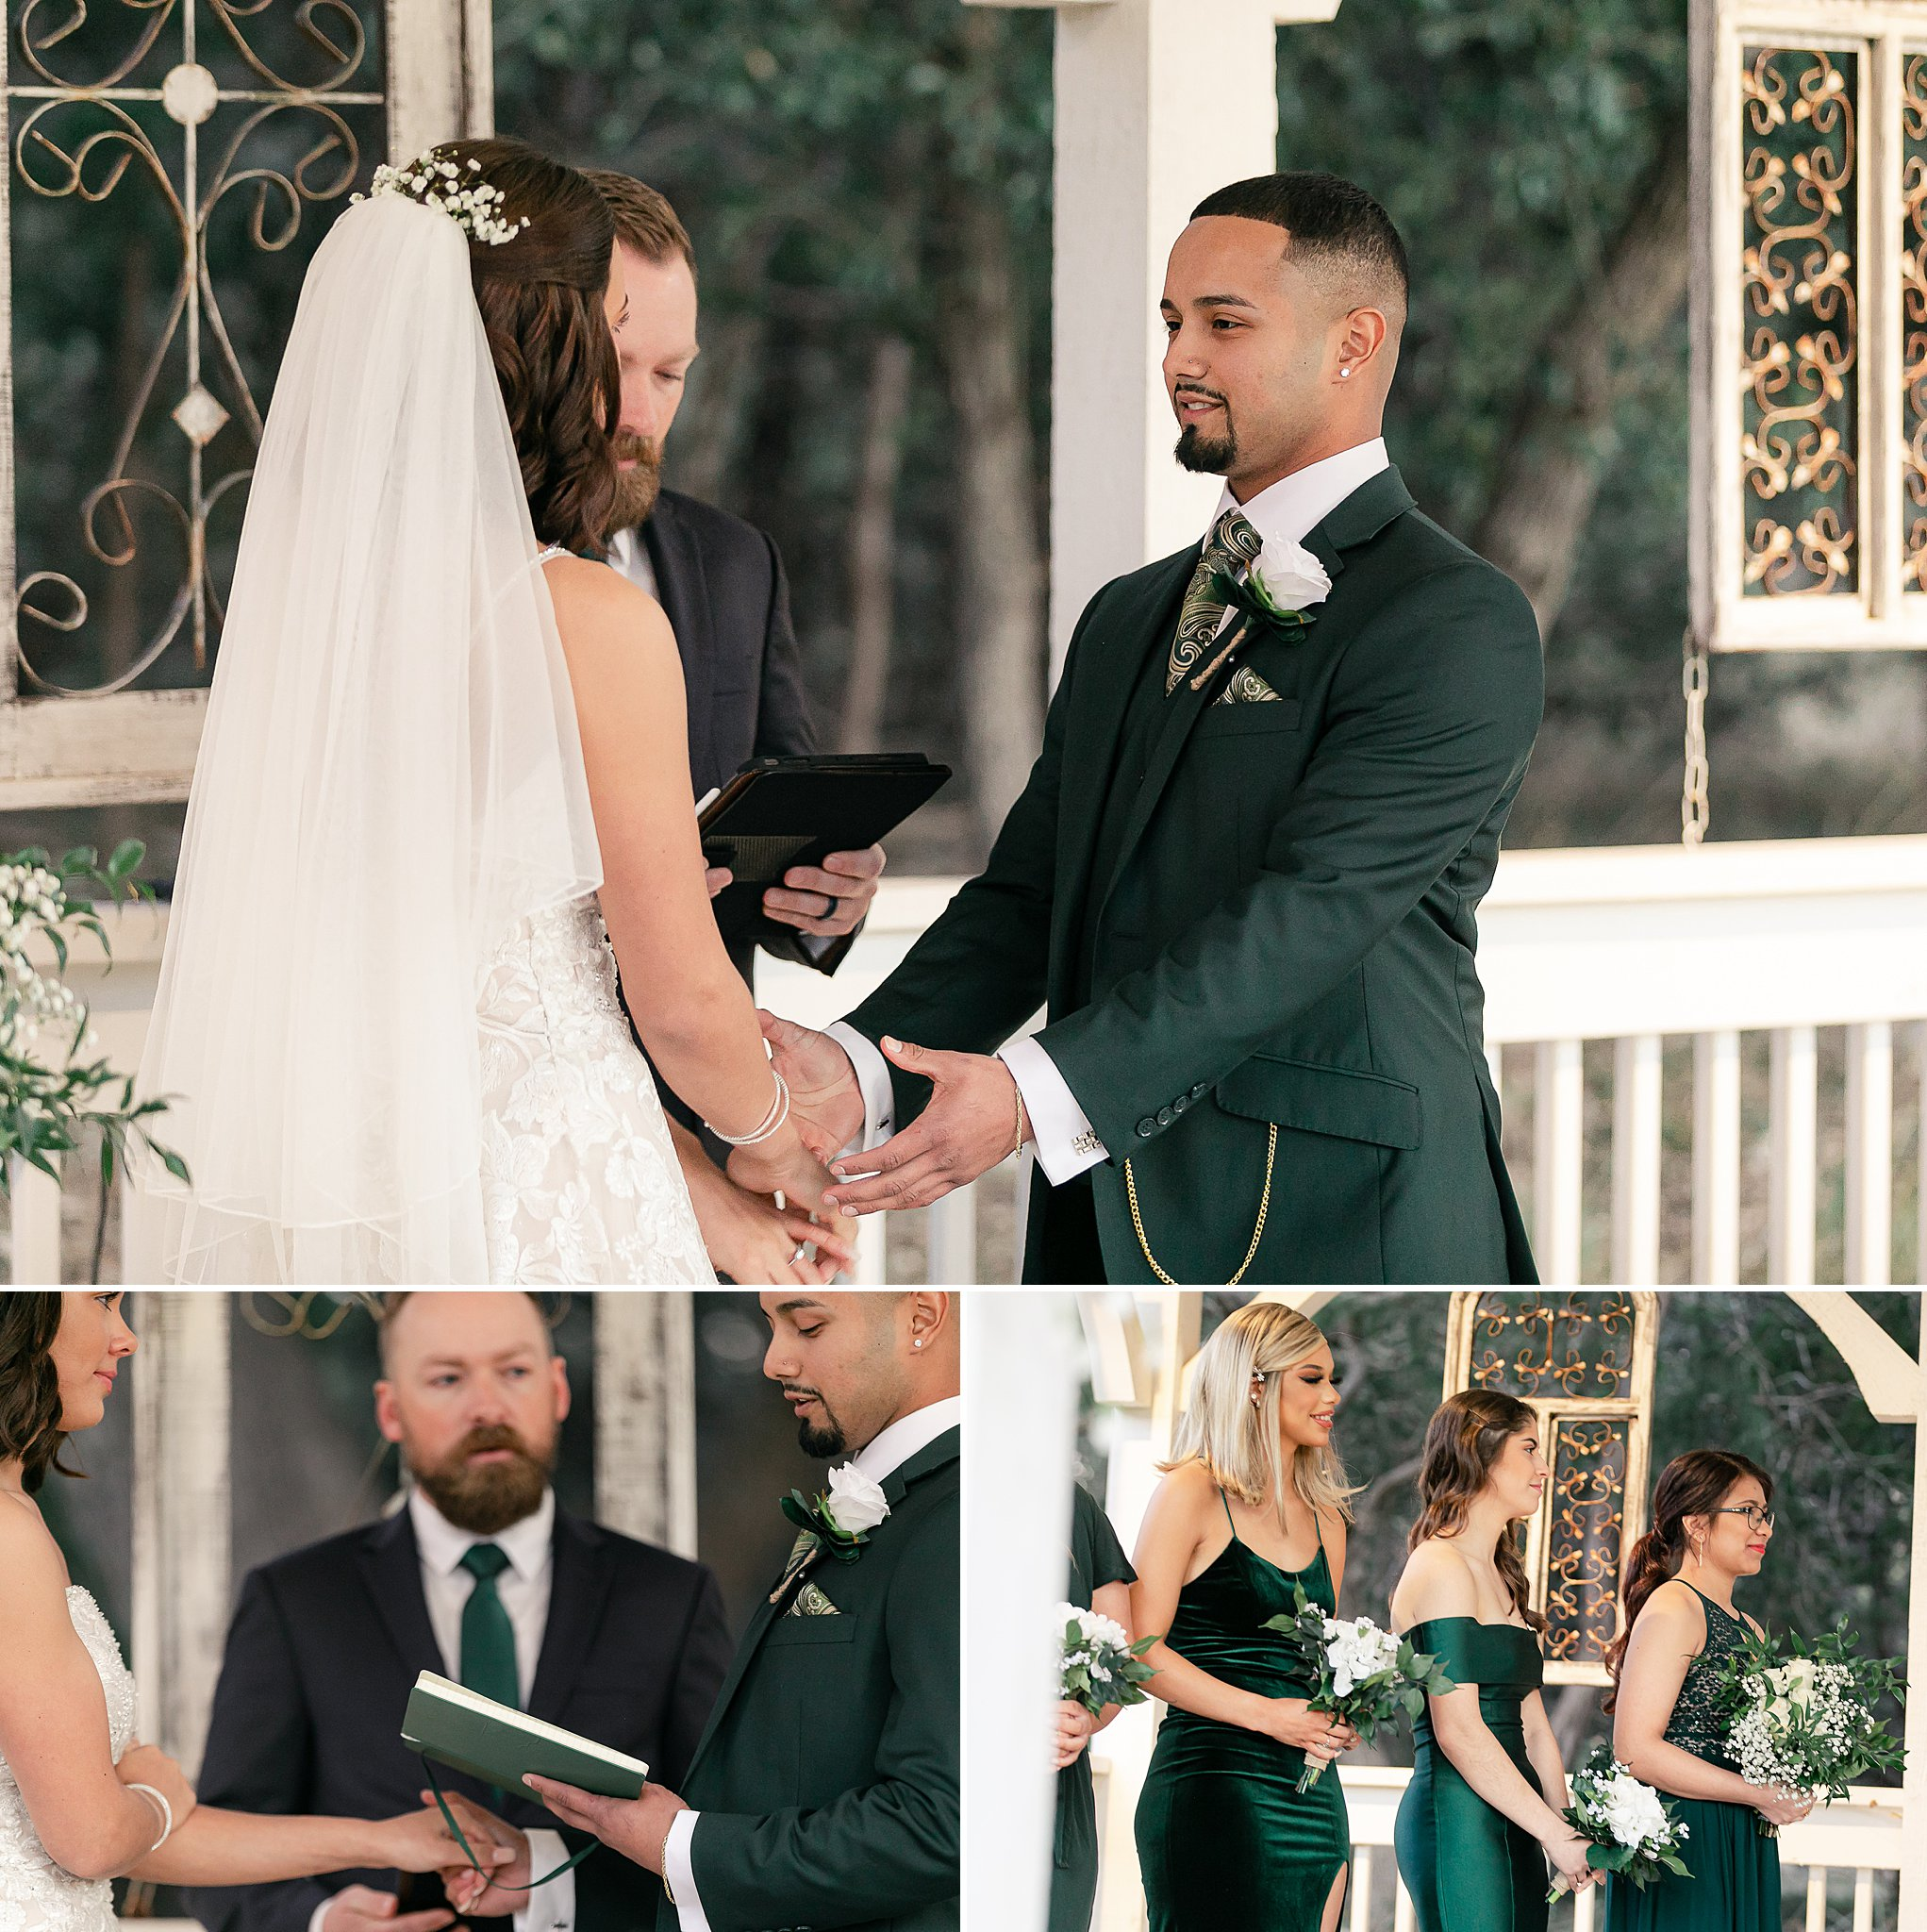 Carly-Barton-Photography-Texas-Wedding-Photographer-Western-Sky-Wedding-Event-Venue-Emerald-Green-Theme_0036.jpg